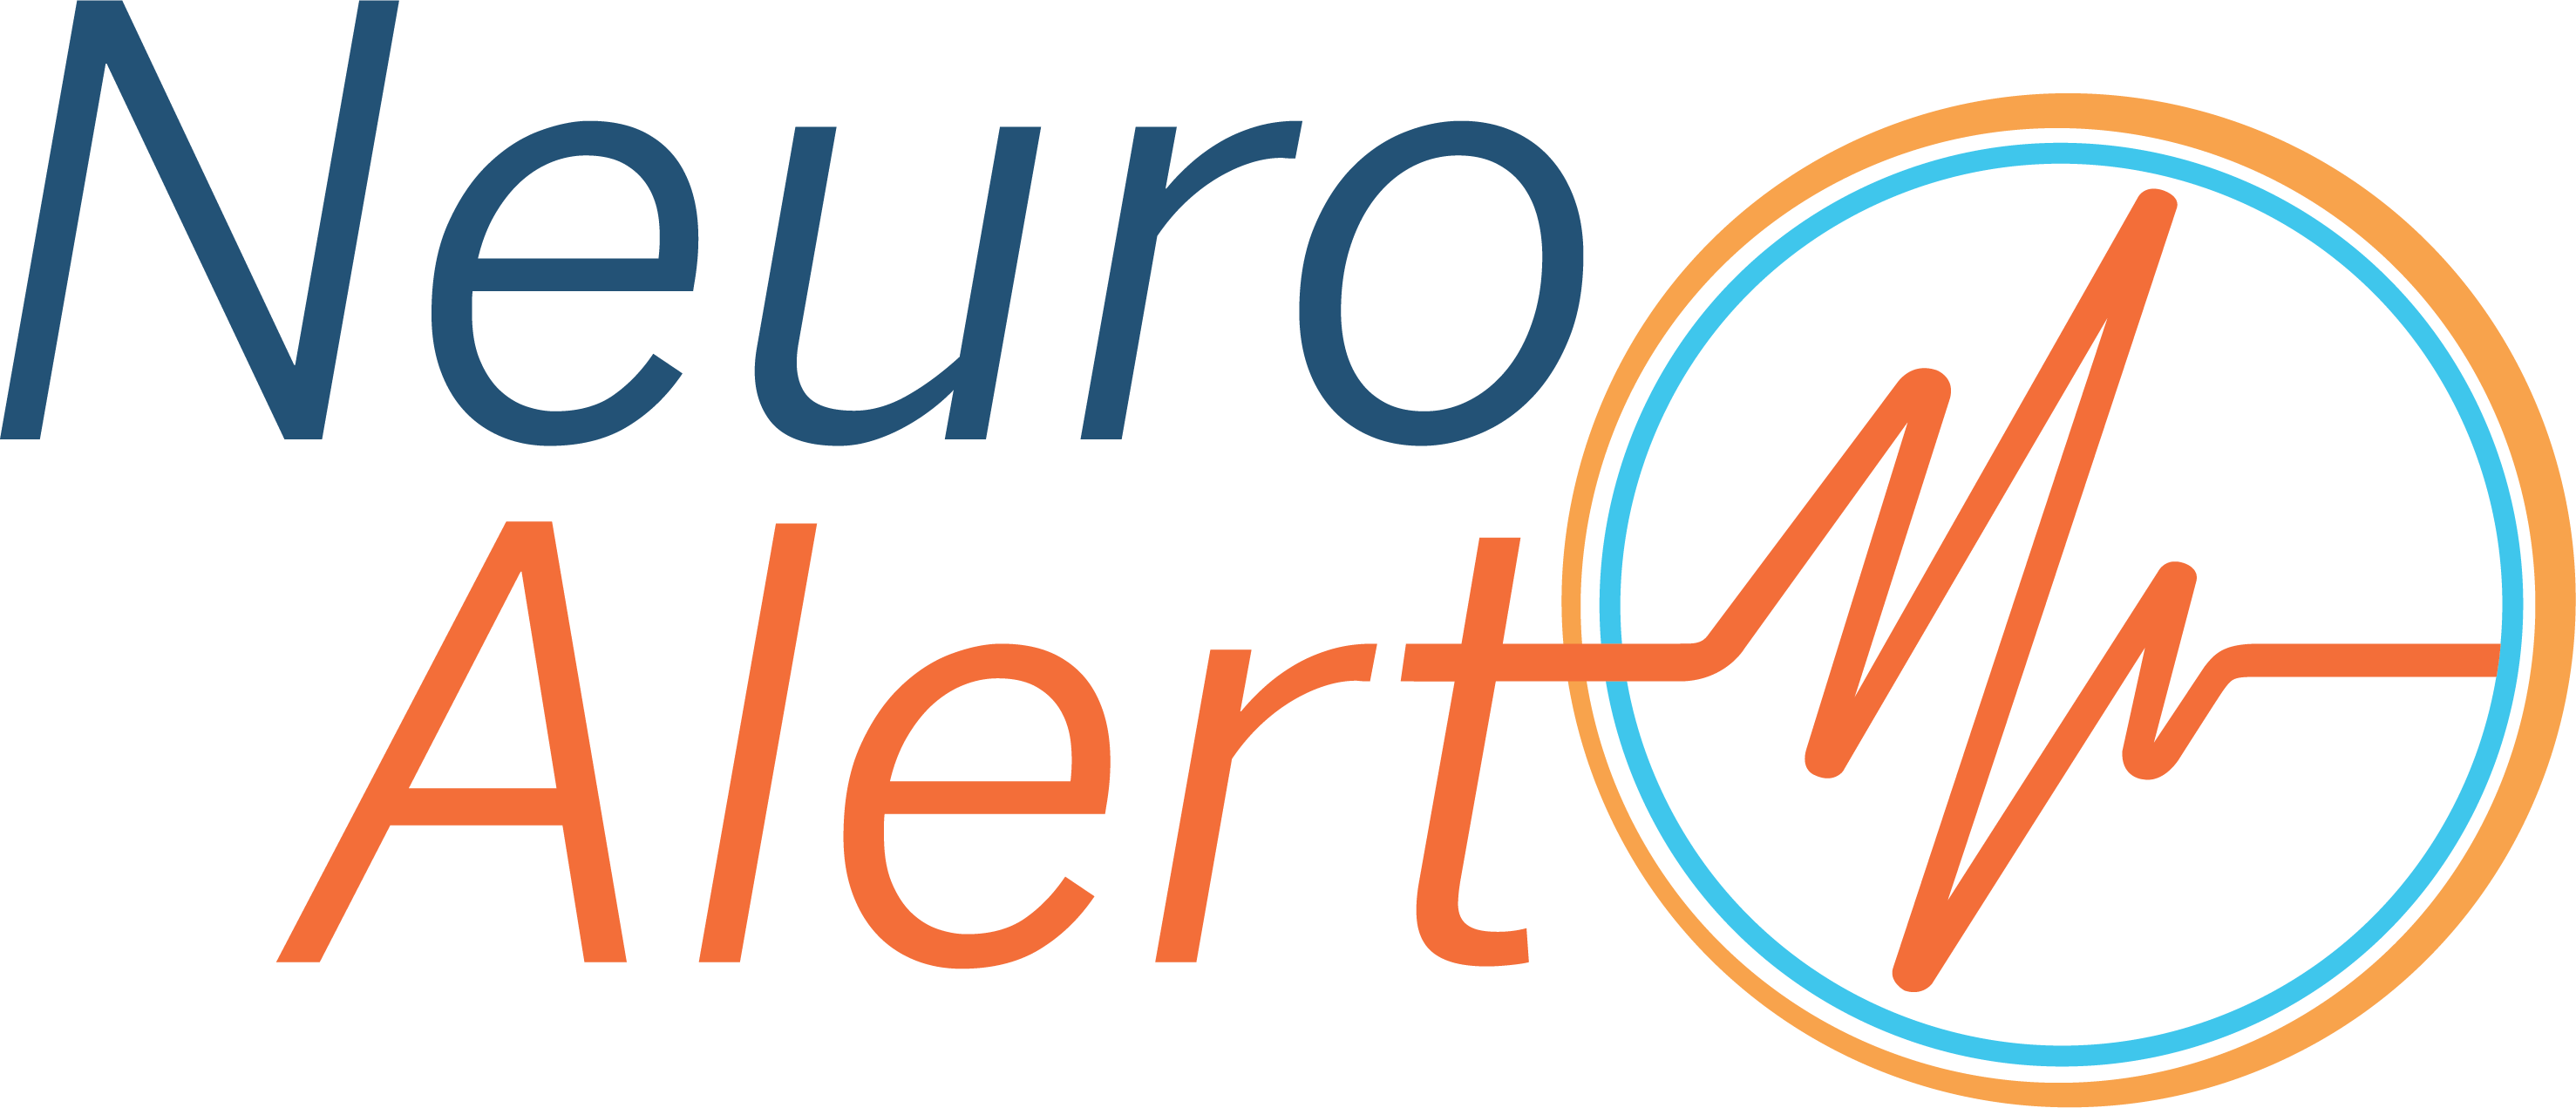 Neuro Alert at the New England Neurosurgical Society's Annual Meeting